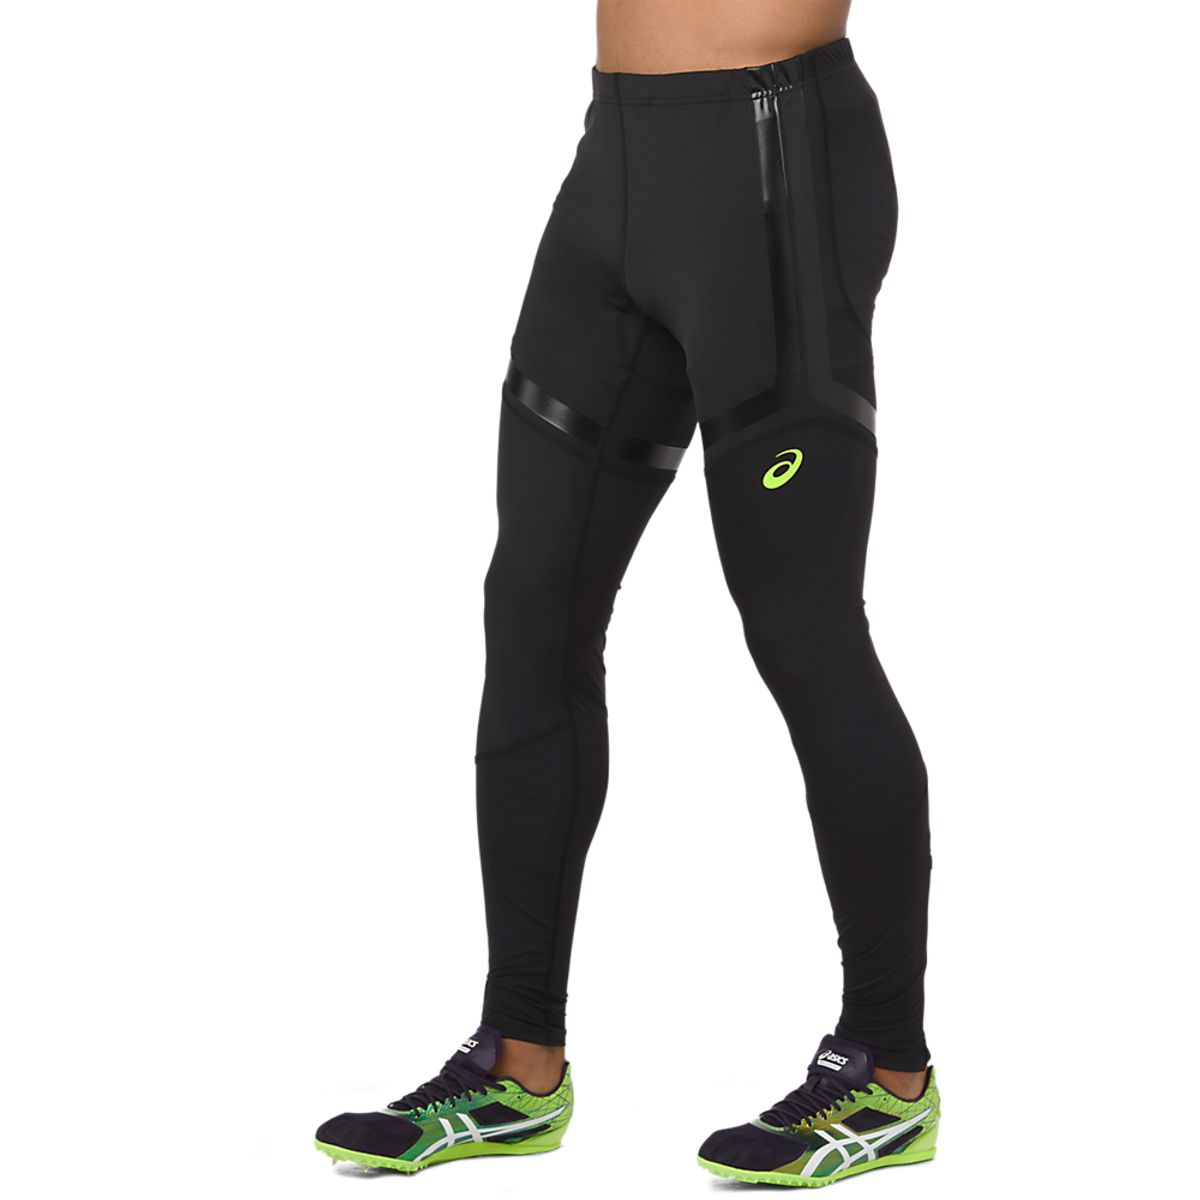 Calca-Asics-Moving-Tight---Feminino---Preta